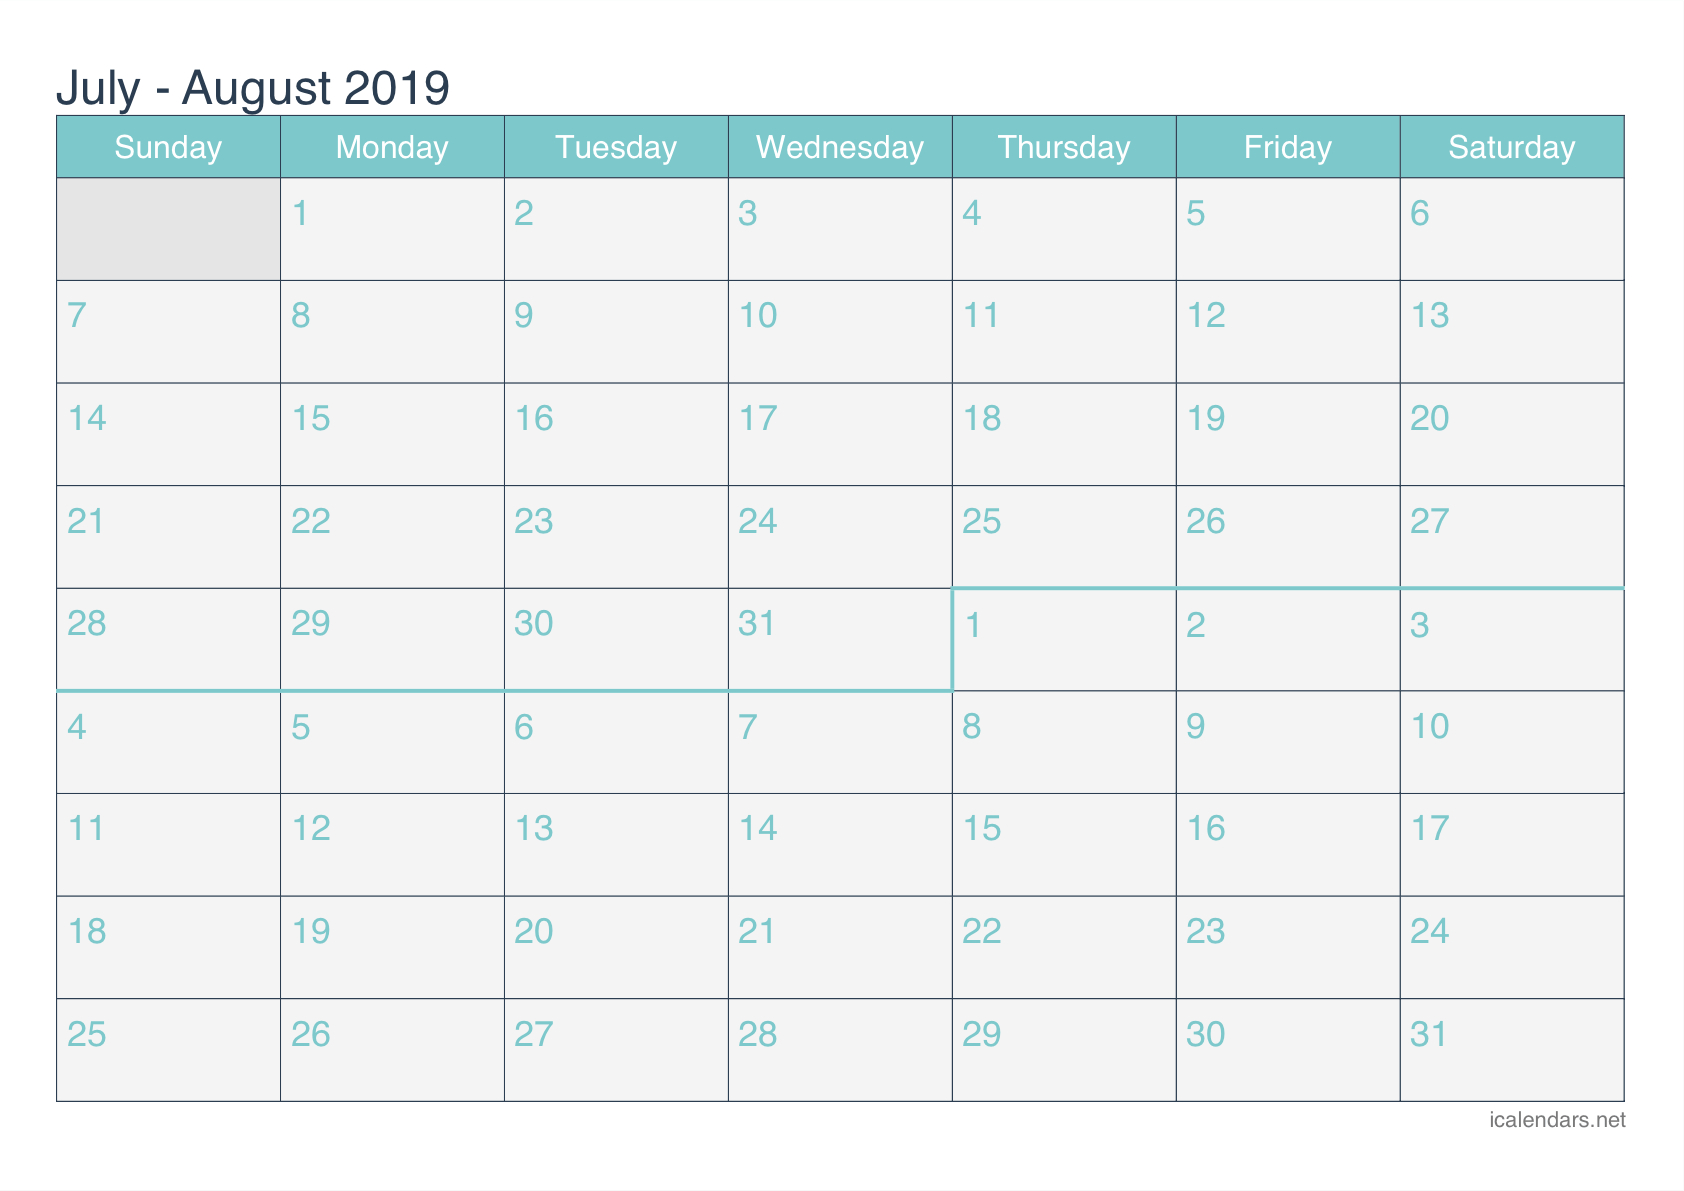 July And August 2019 Printable Calendar - Icalendars within Blank June July August Calendar